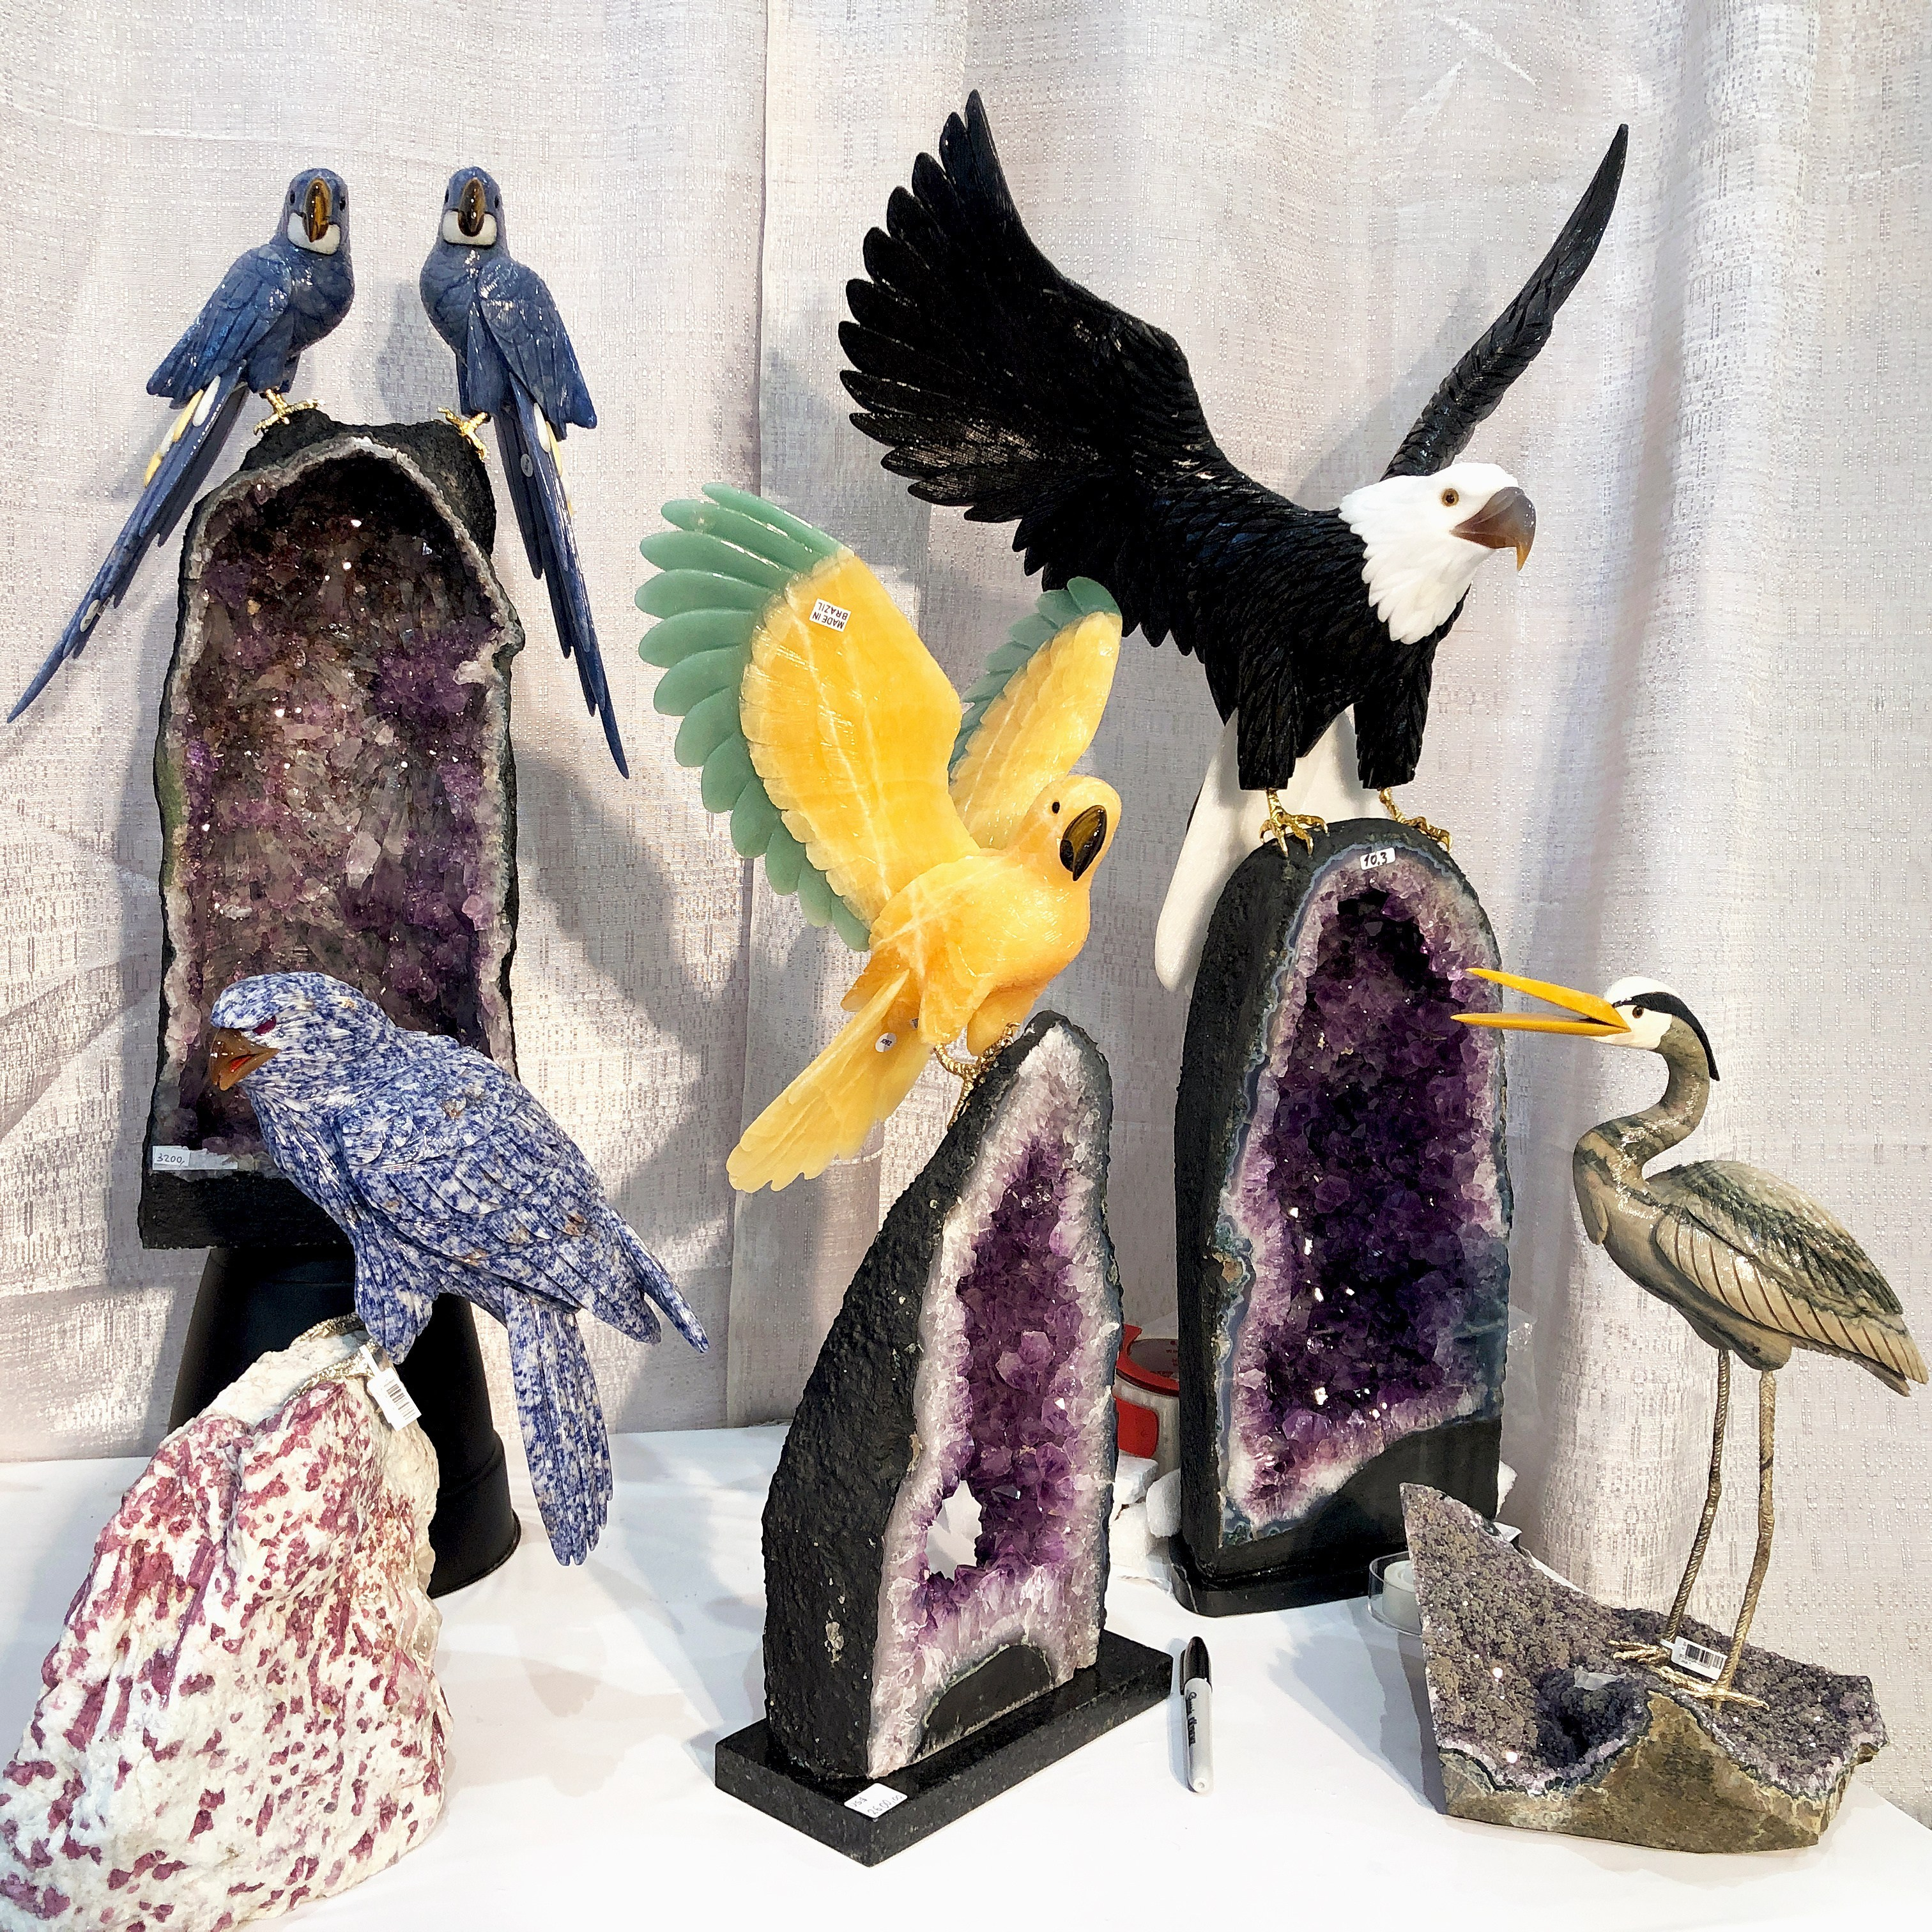 Incredible carved gemstone bird statues from BB Gems, some with amethyst geodes! Spotted at the 2019 AGTA GemFair.